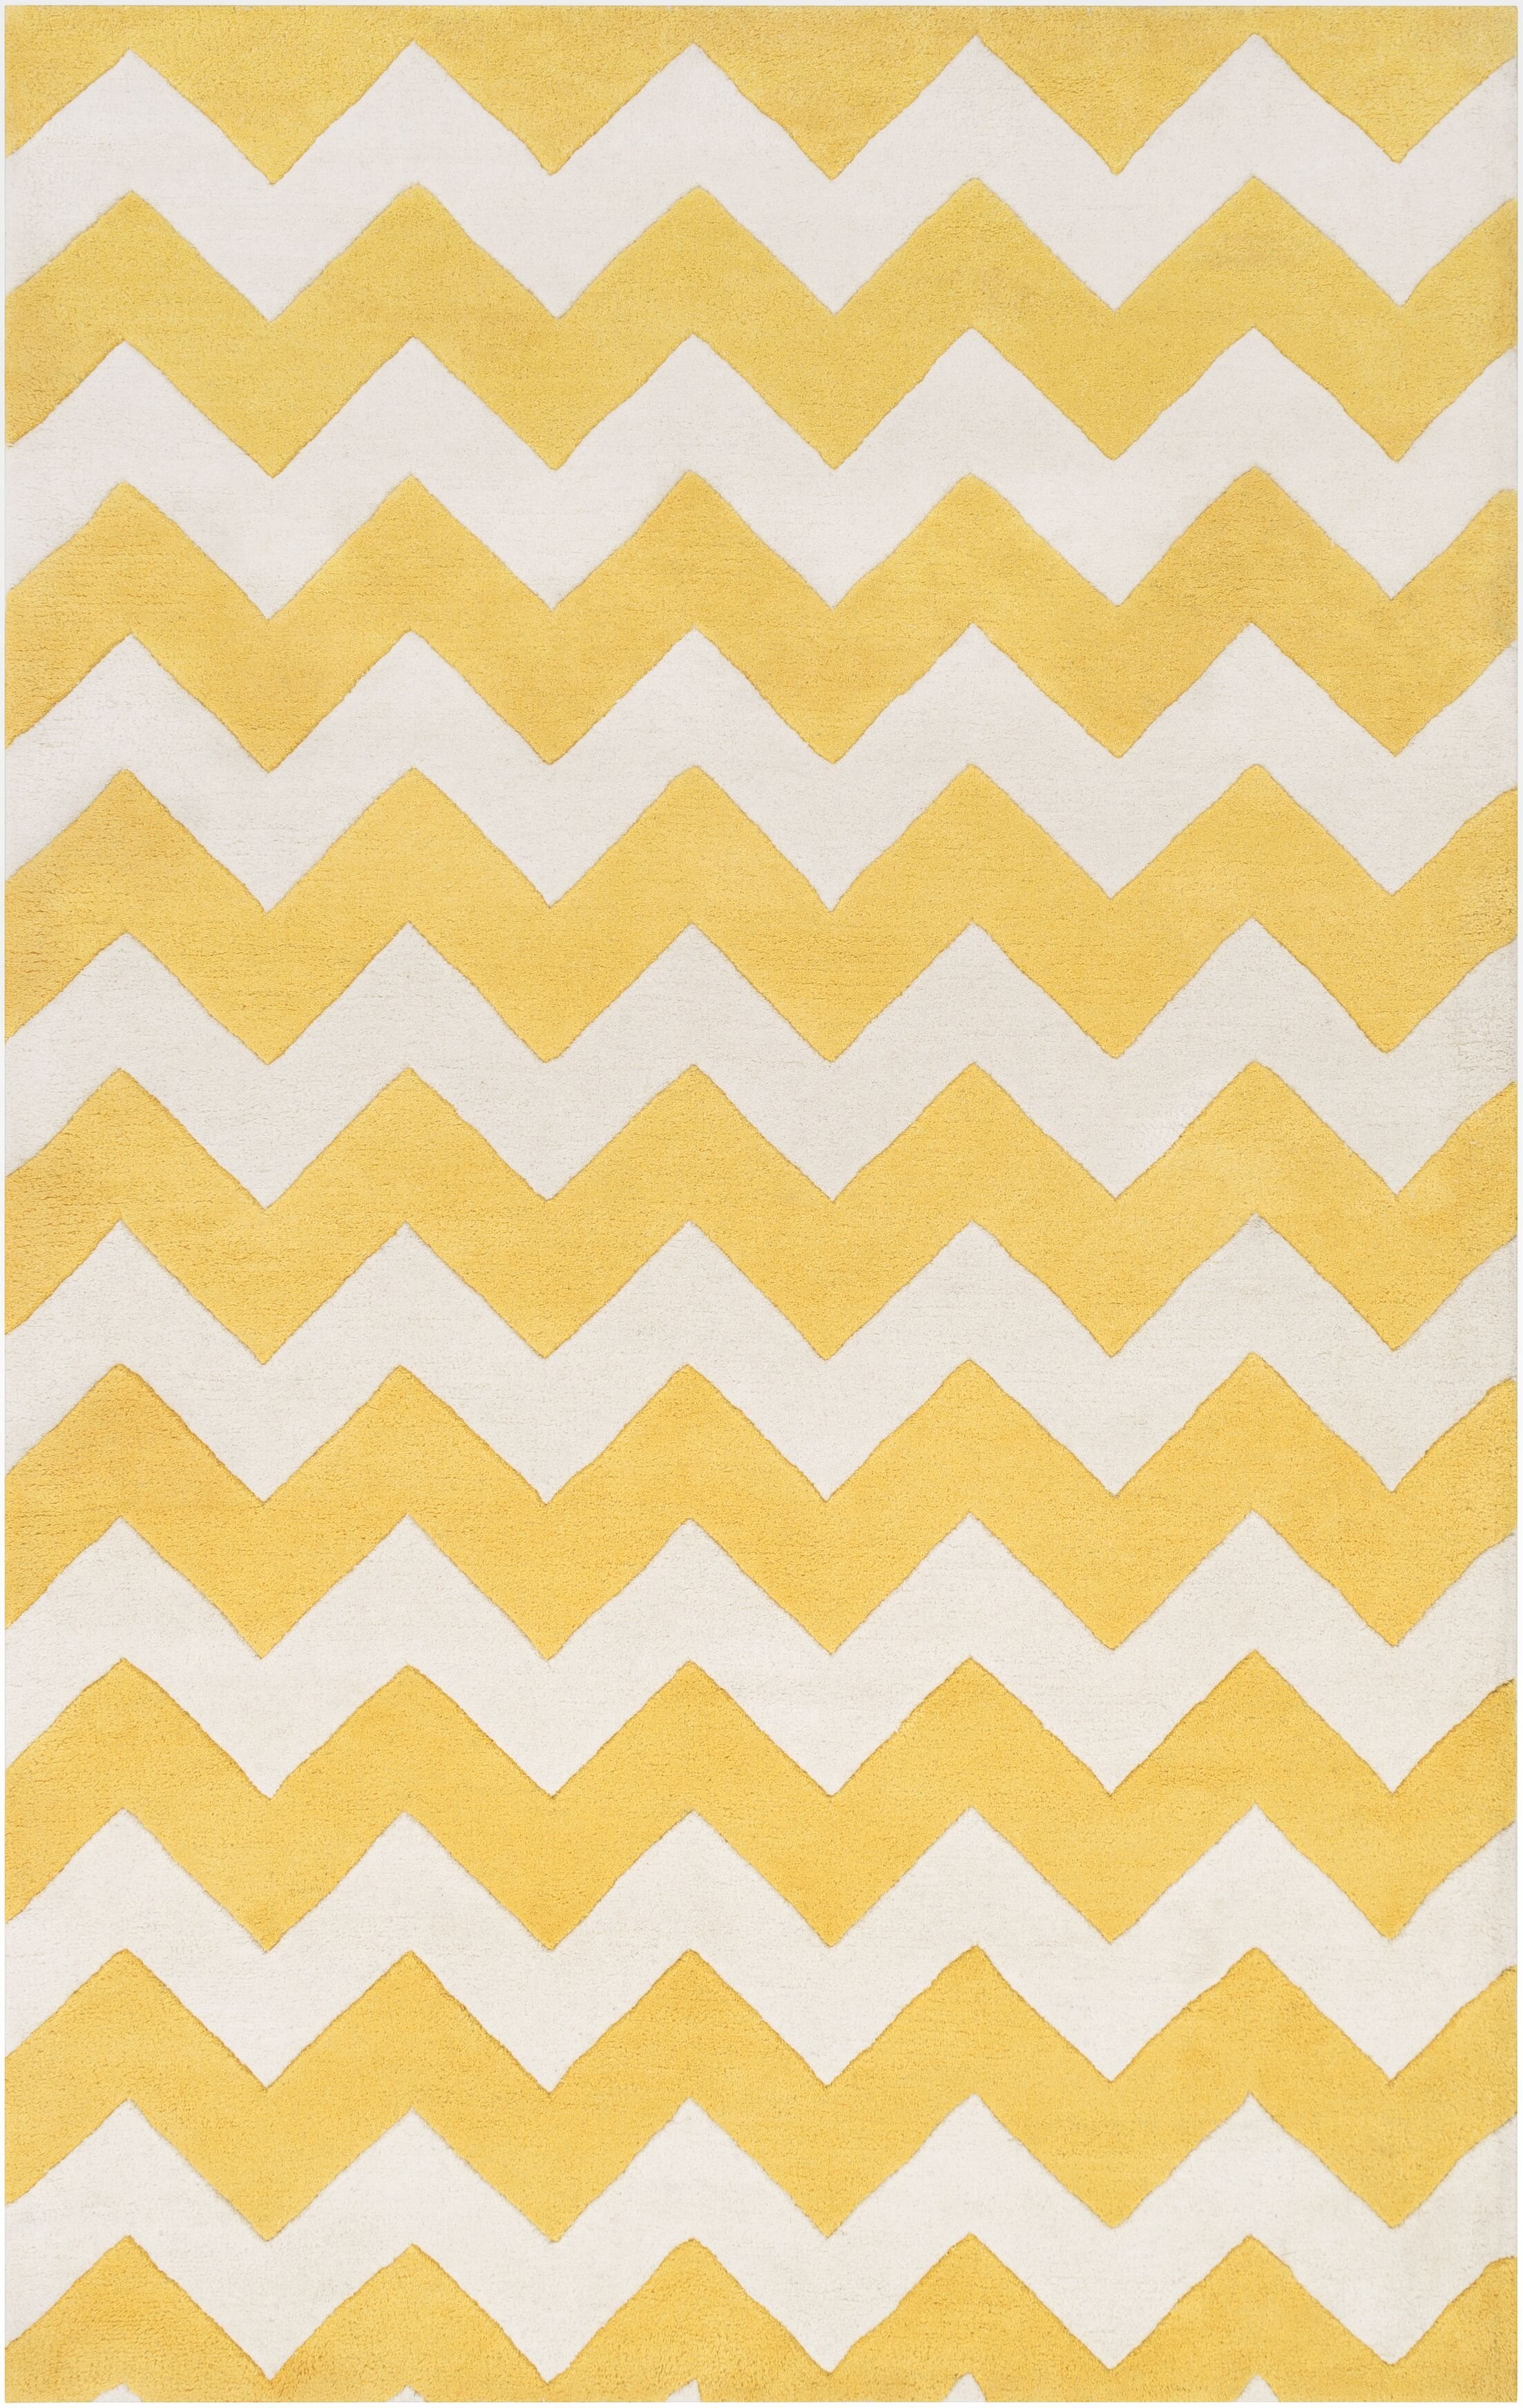 Ayler Yellow/Ivory Chevron Area Rug Rug Size: Rectangle 8' x 11'